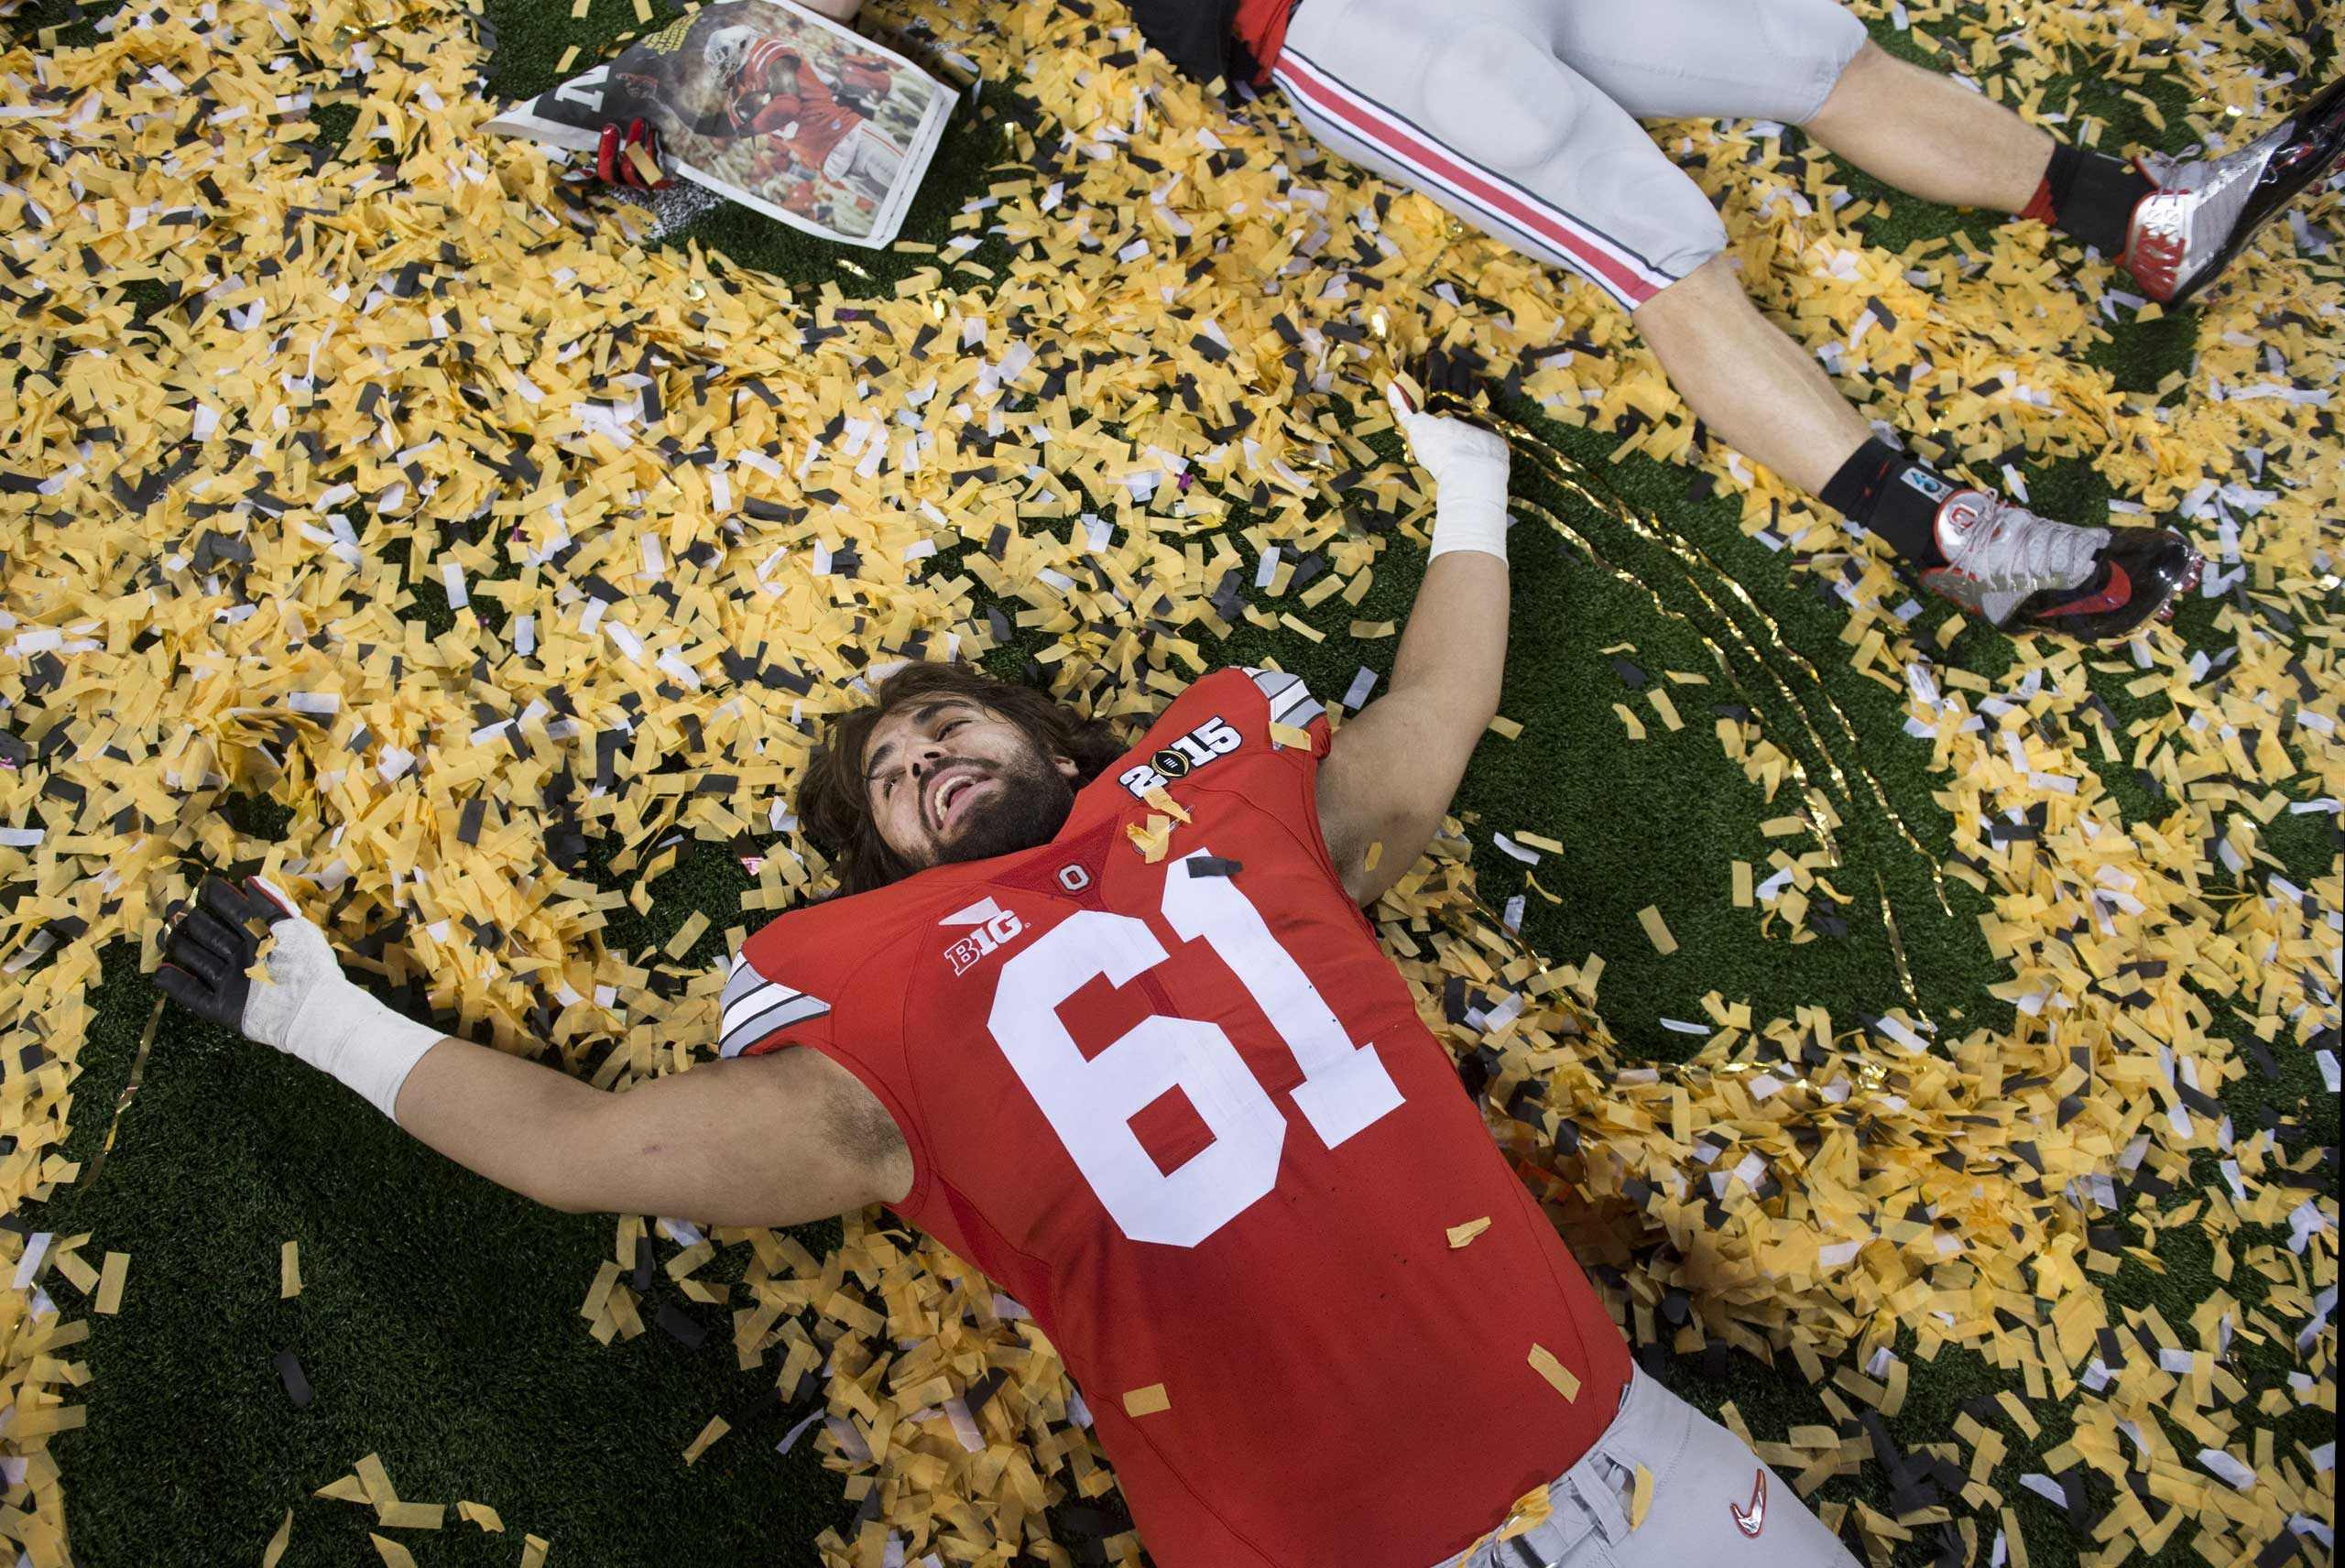 Ohio State Buckeyes offensive lineman Logan Gaskey (61) makes a snow angel in confetti as he celebrates after the Buckeyes defeated the Oregon Ducks to win the College Football Playoff National Championship, in Arlington, Texas on Jan. 12, 2015.